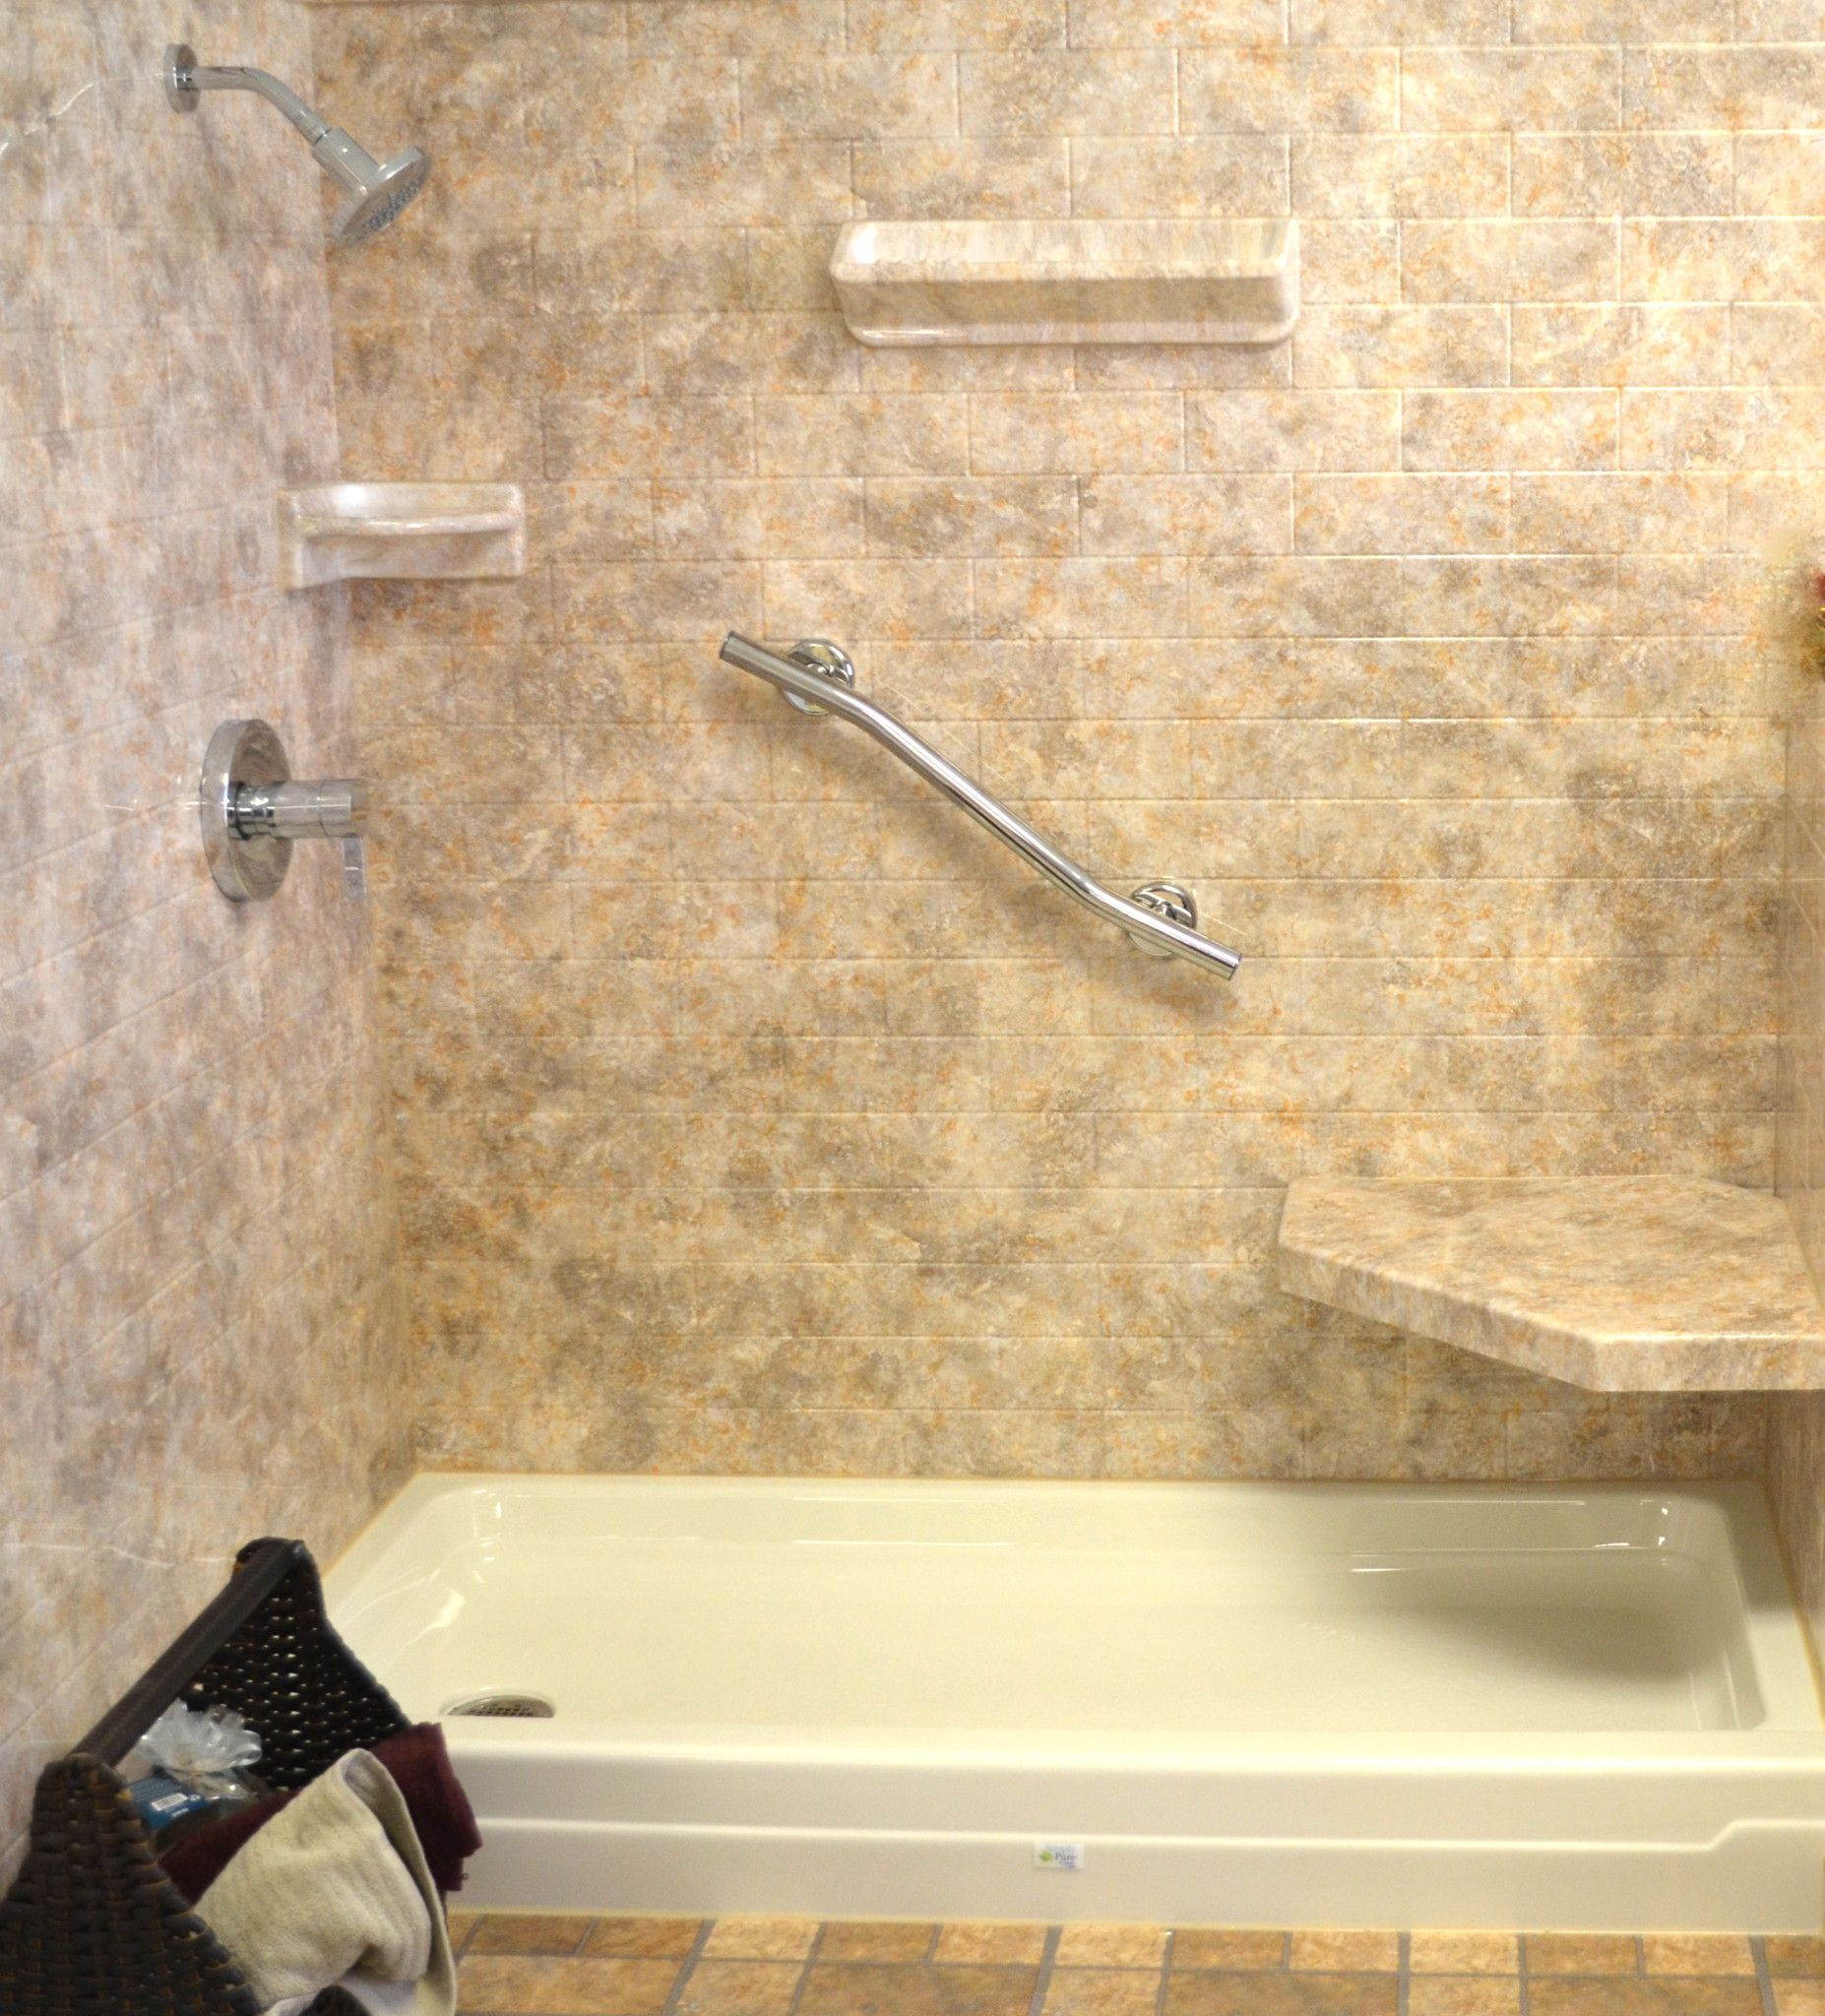 Acrylic Vs Tile For Shower Walls And Tub Enclosures Acrylic Shower Walls Shower Tile Bathroom Shower Walls